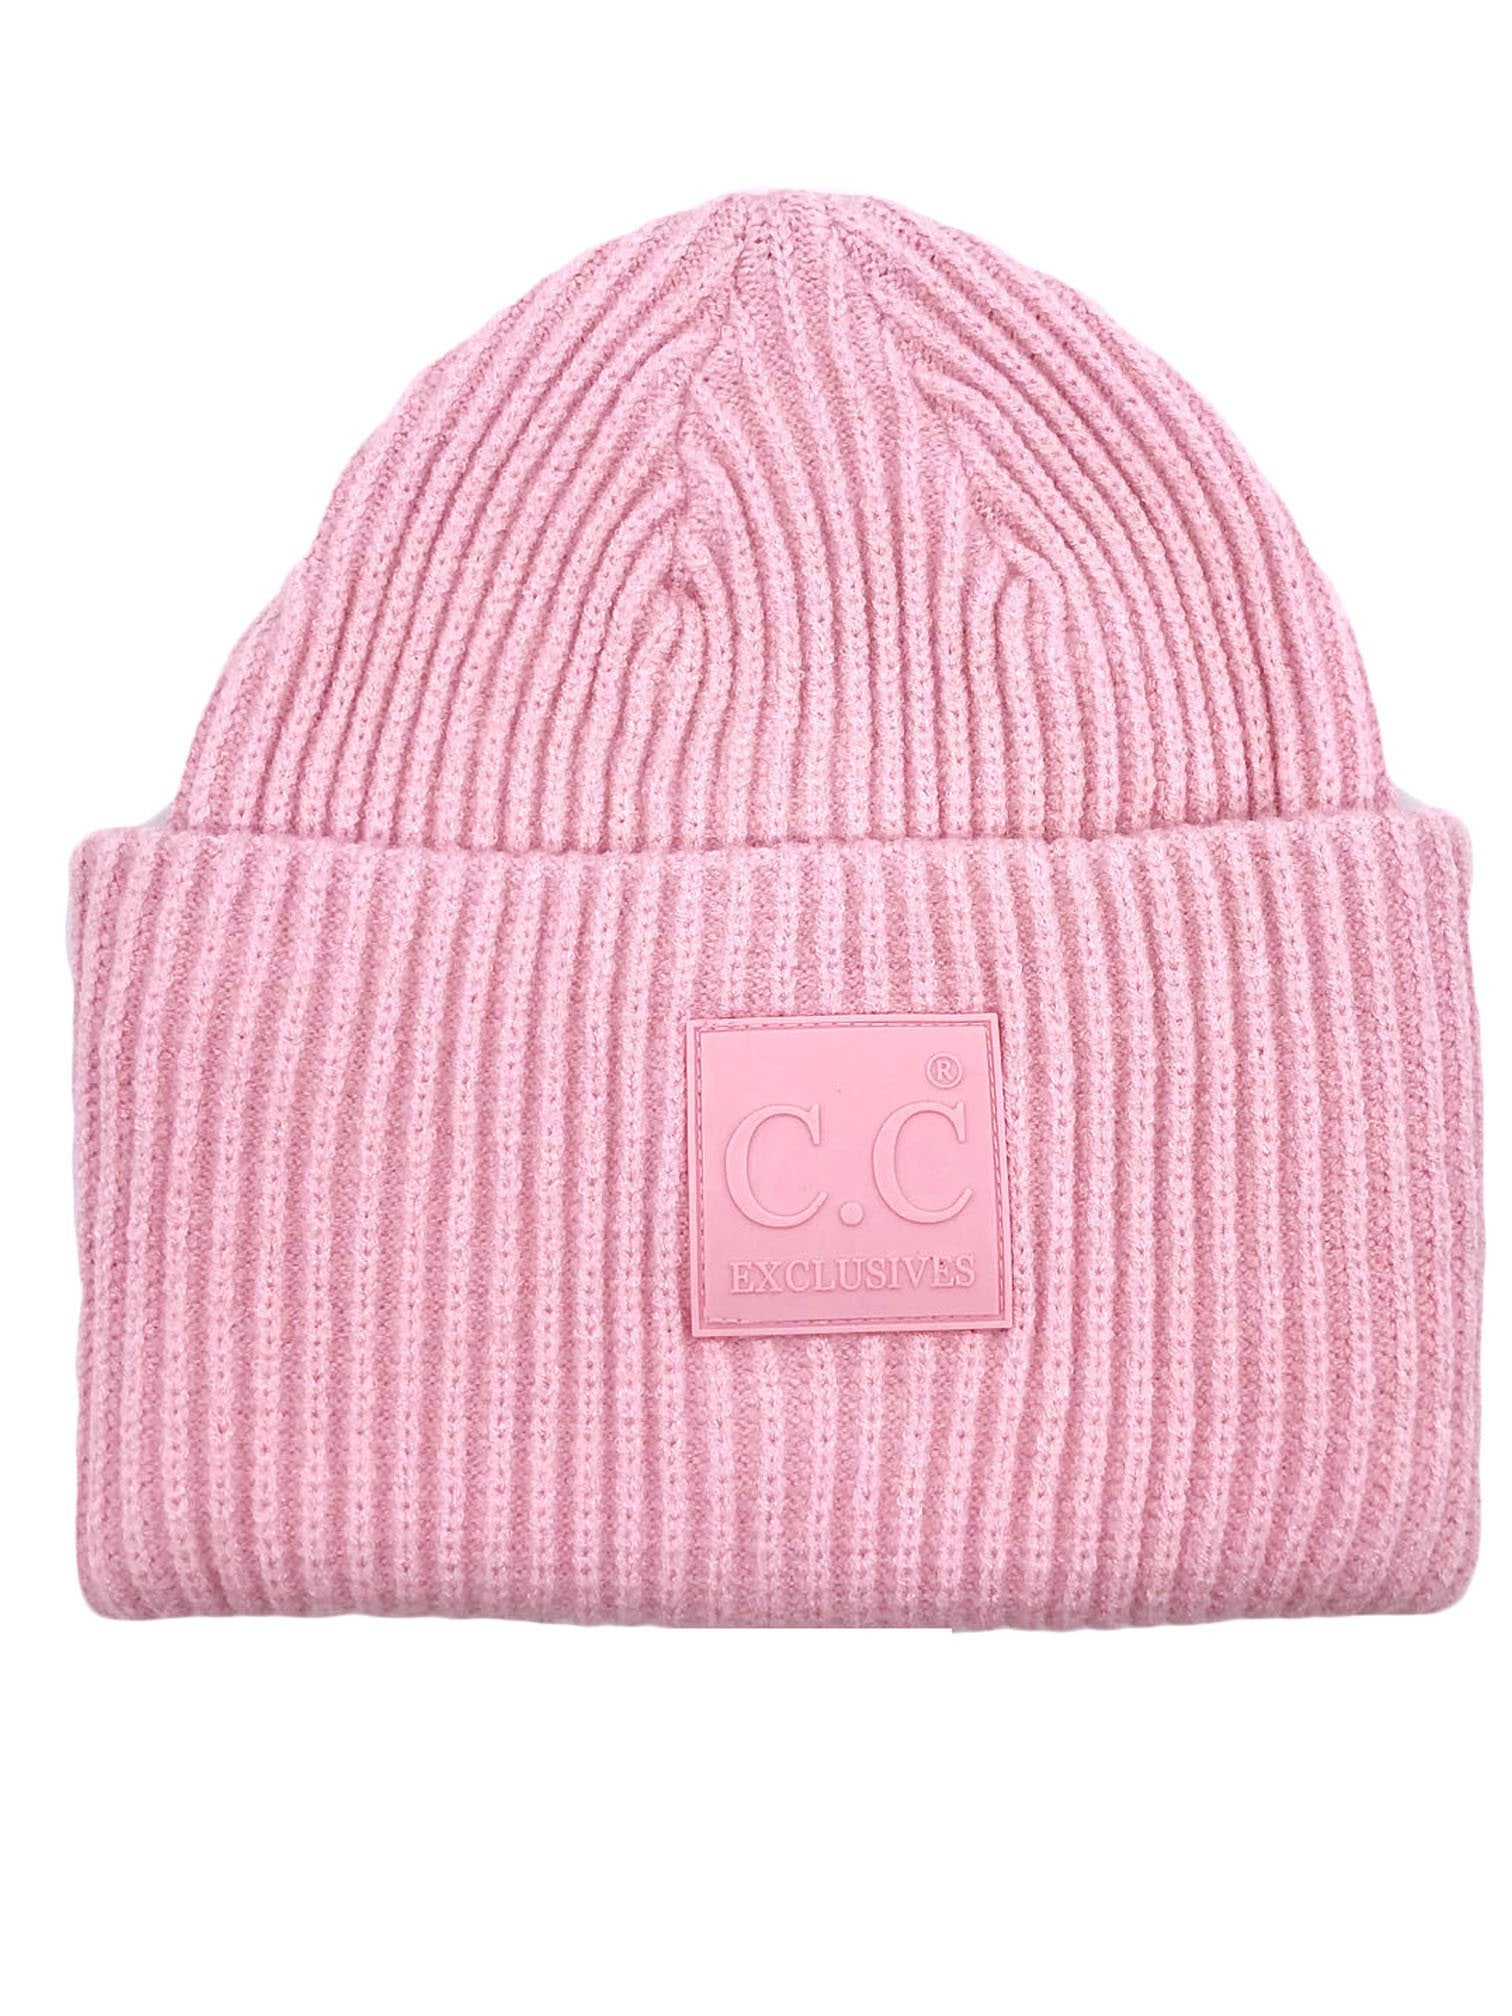 HAT-7007 Beanie with Rubber Patch Blush Pink